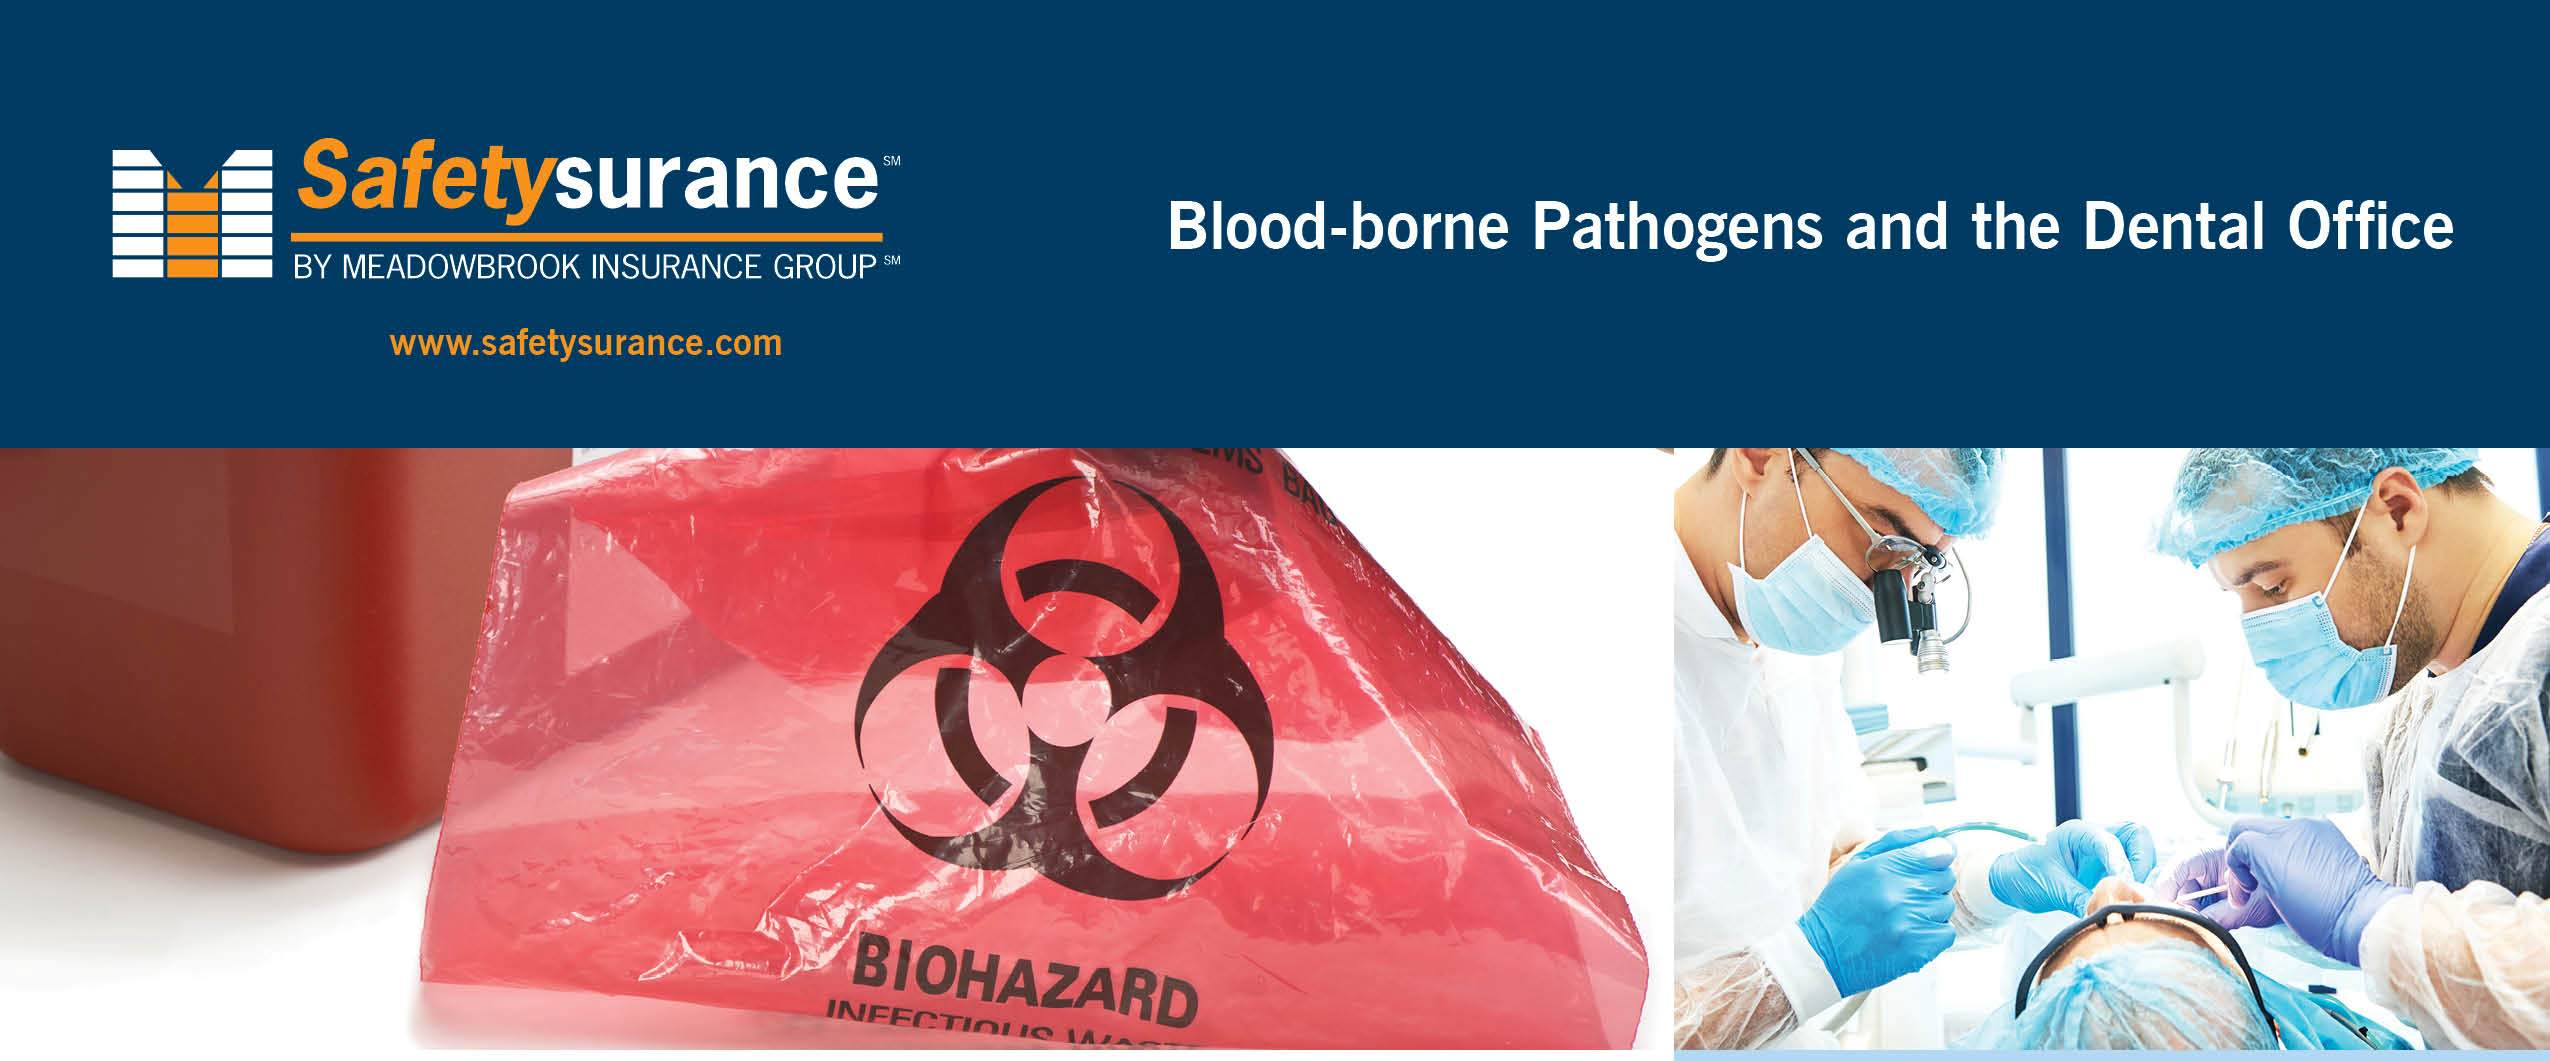 Bloodborne Pathogens Meadowbrook Insurance